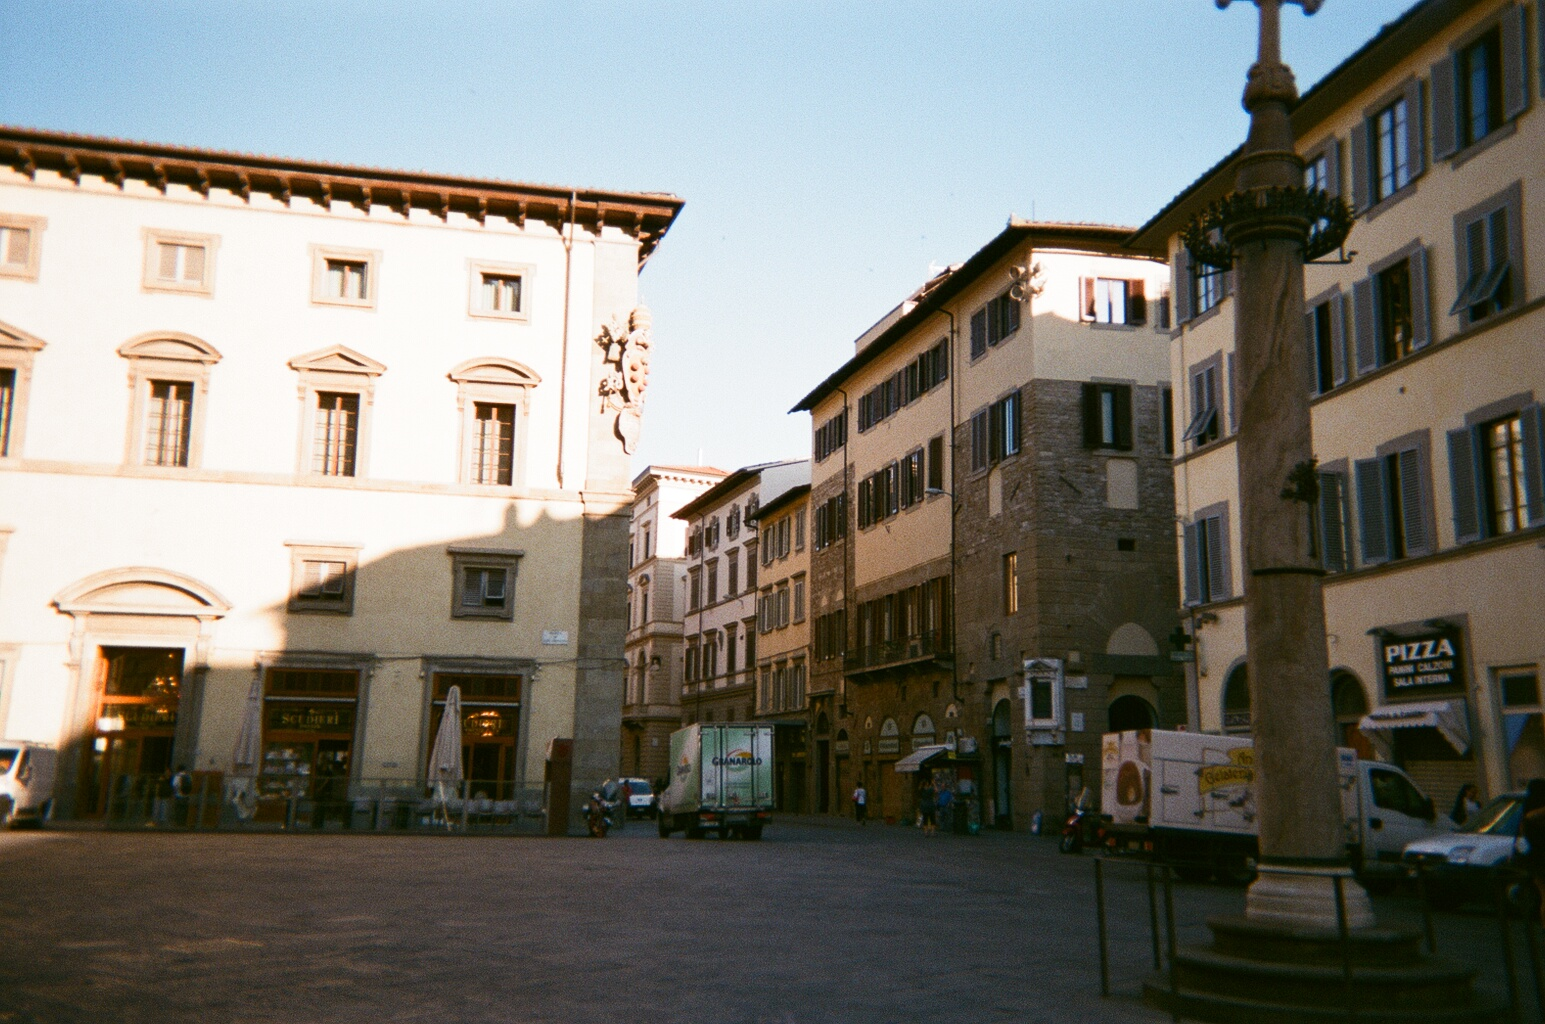 Italy on film - Florence